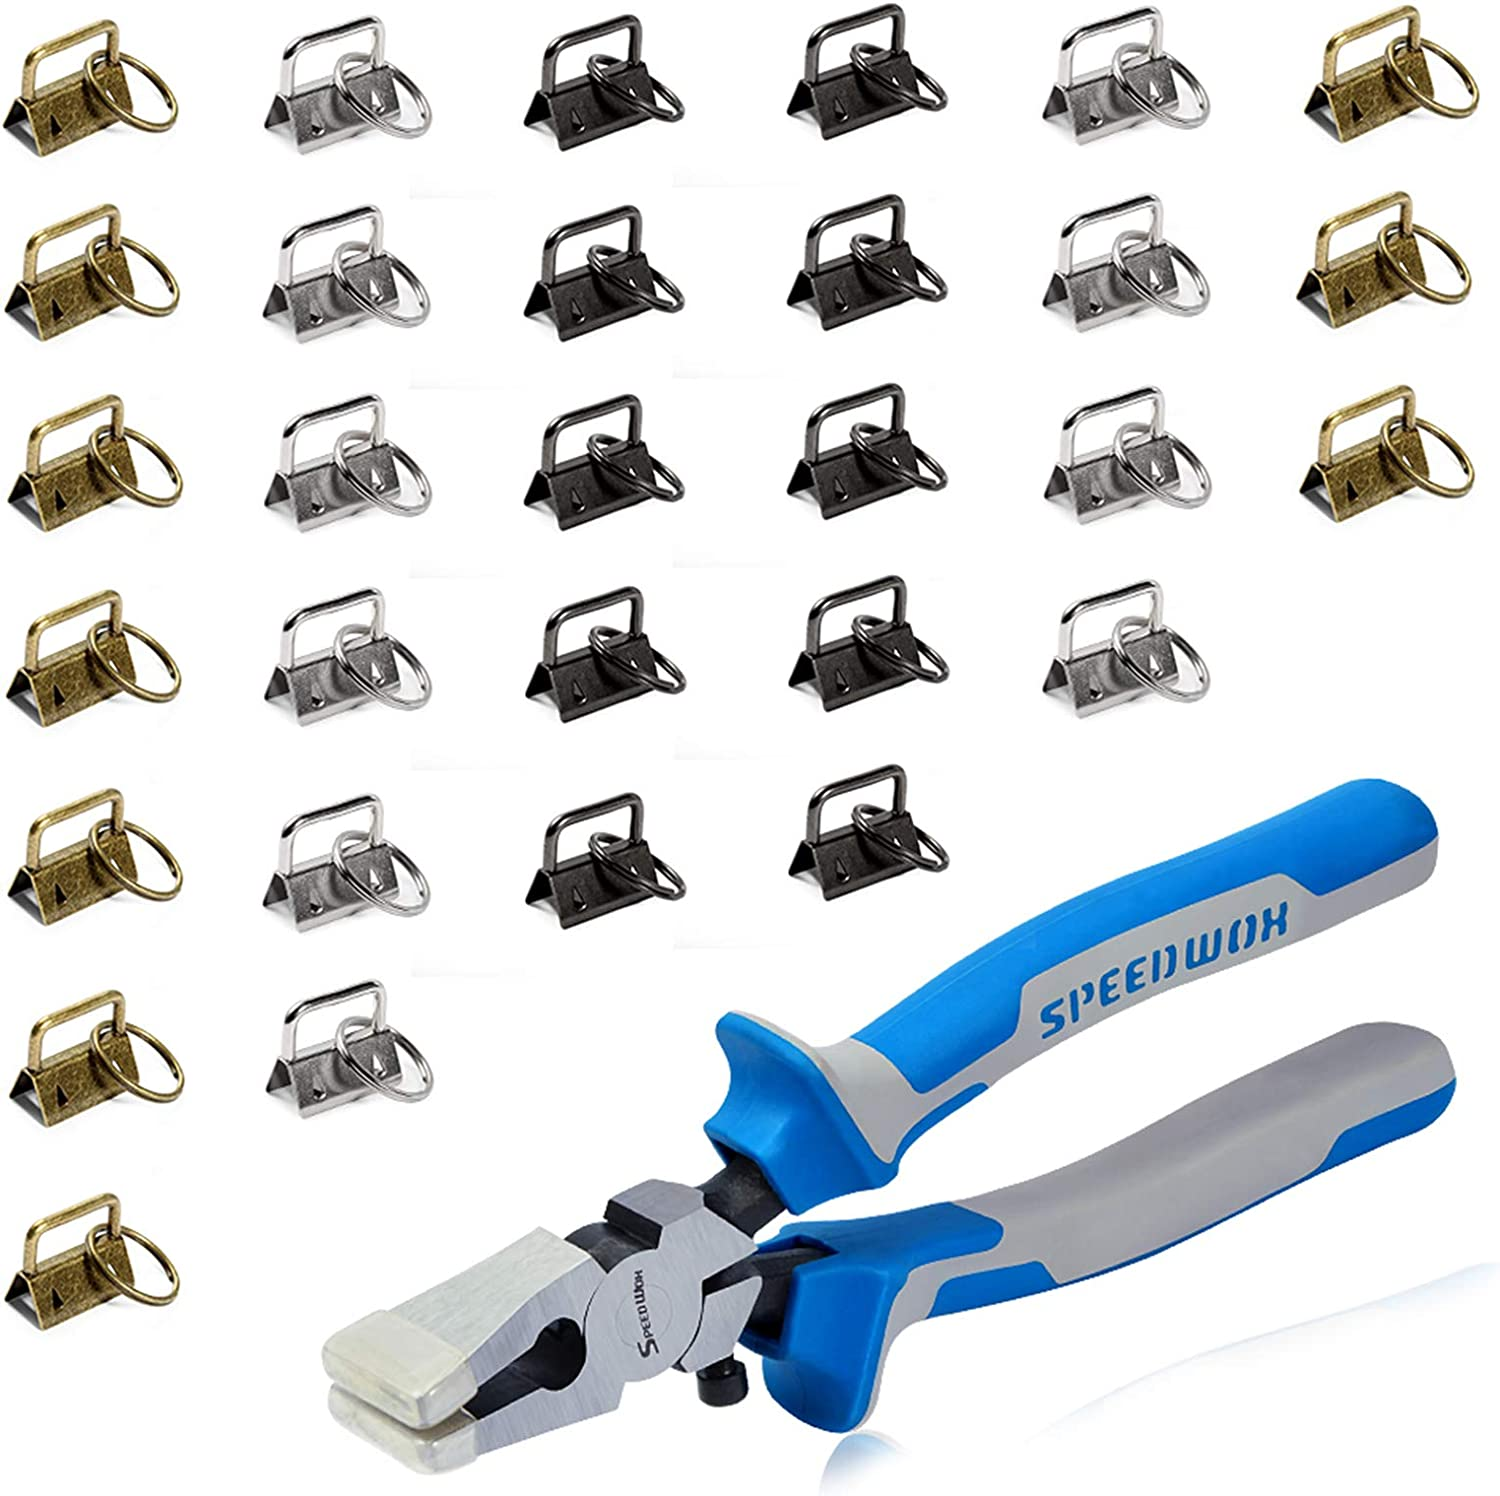 SPEEDWOX Key Fob Pliers for Max 53% OFF Super Special SALE held 30 1 Keyc Hardware Sets Inch